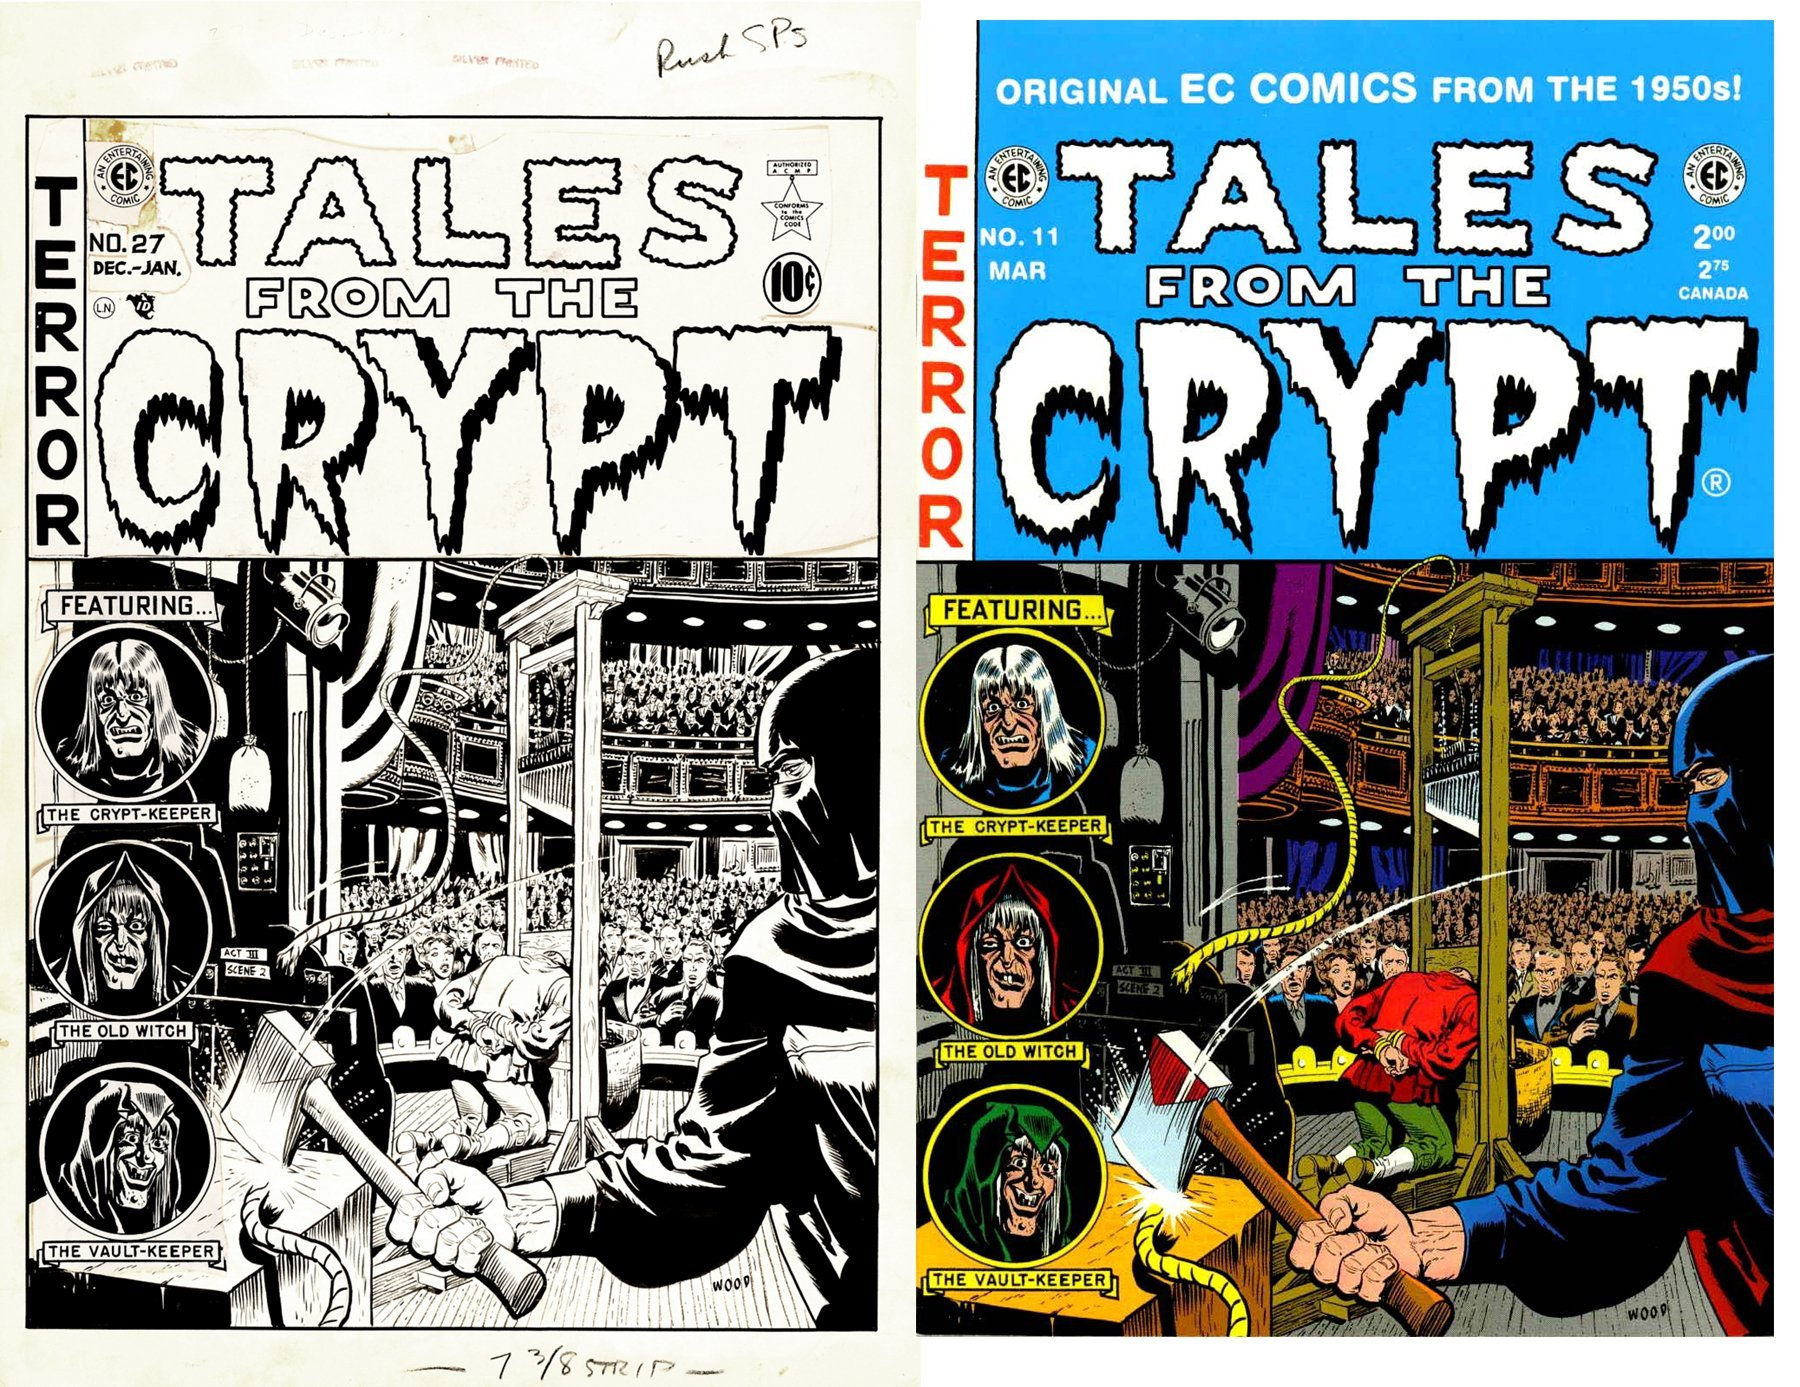 Tales from the Crypt #27 Cover (EXECUTIONER AND GUILLOTINE CROWD SCENE! WOW!) Large Art - 1951